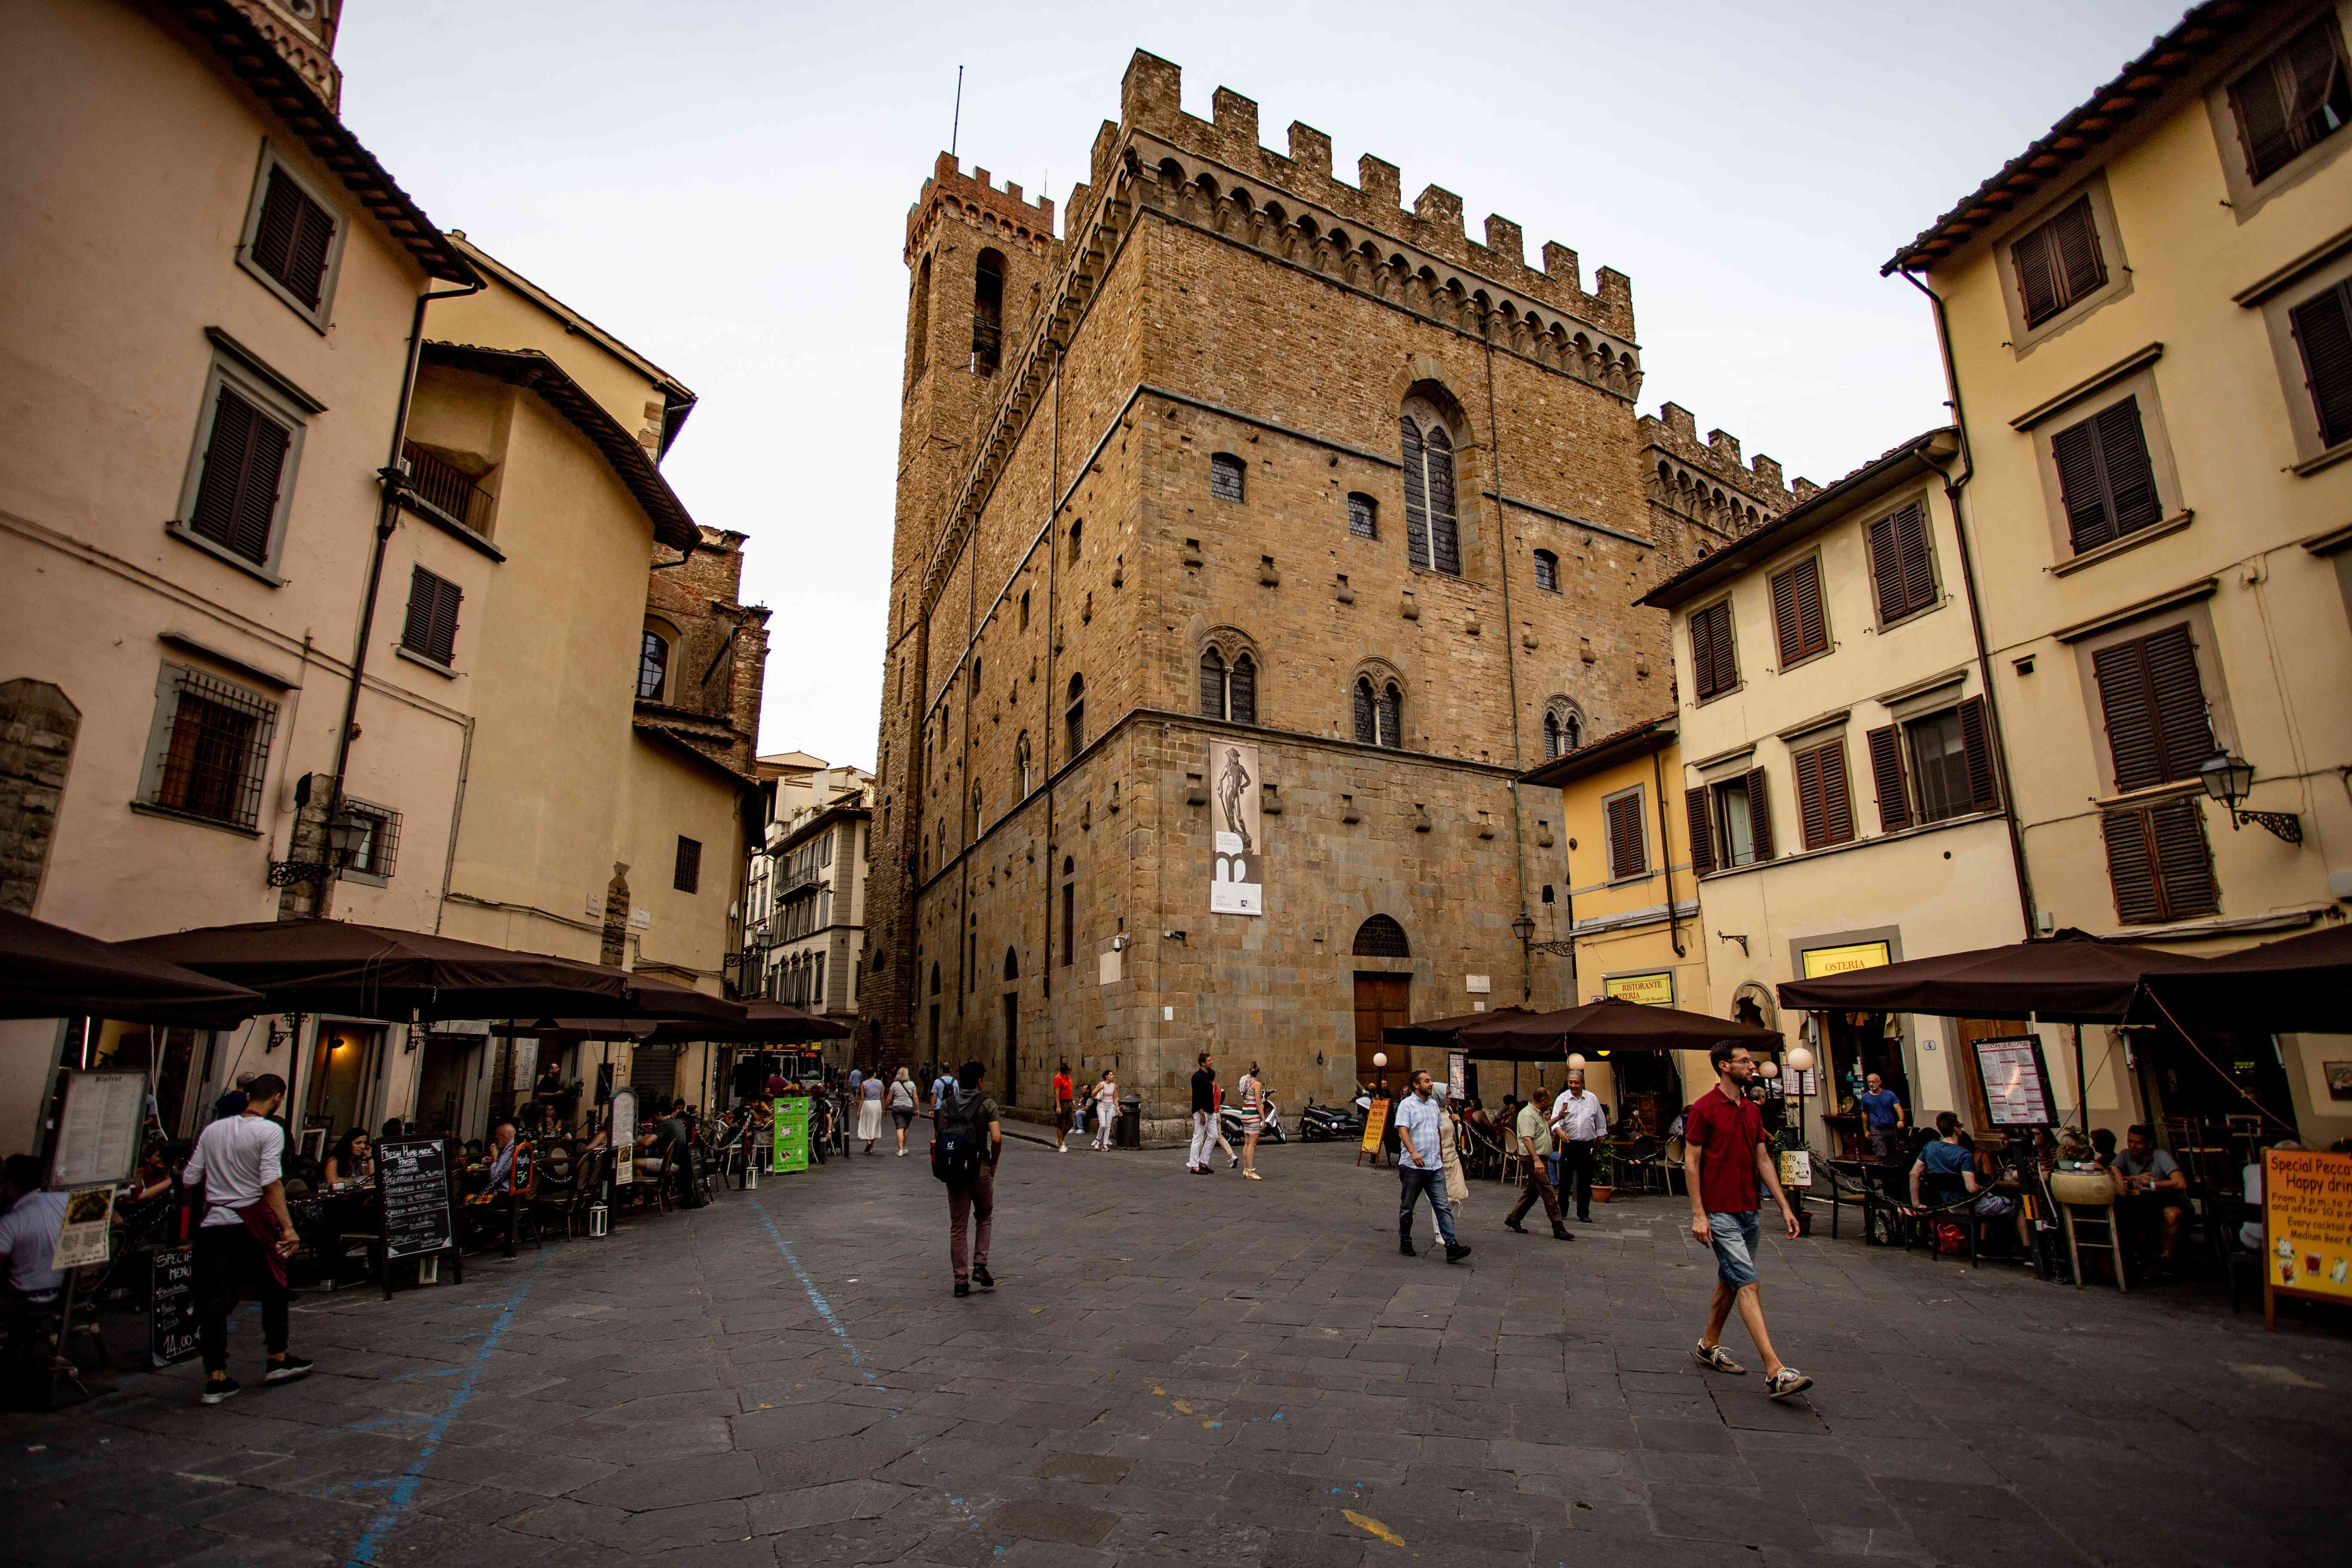 Museo Nazionale del Bargello in Florence, Italy